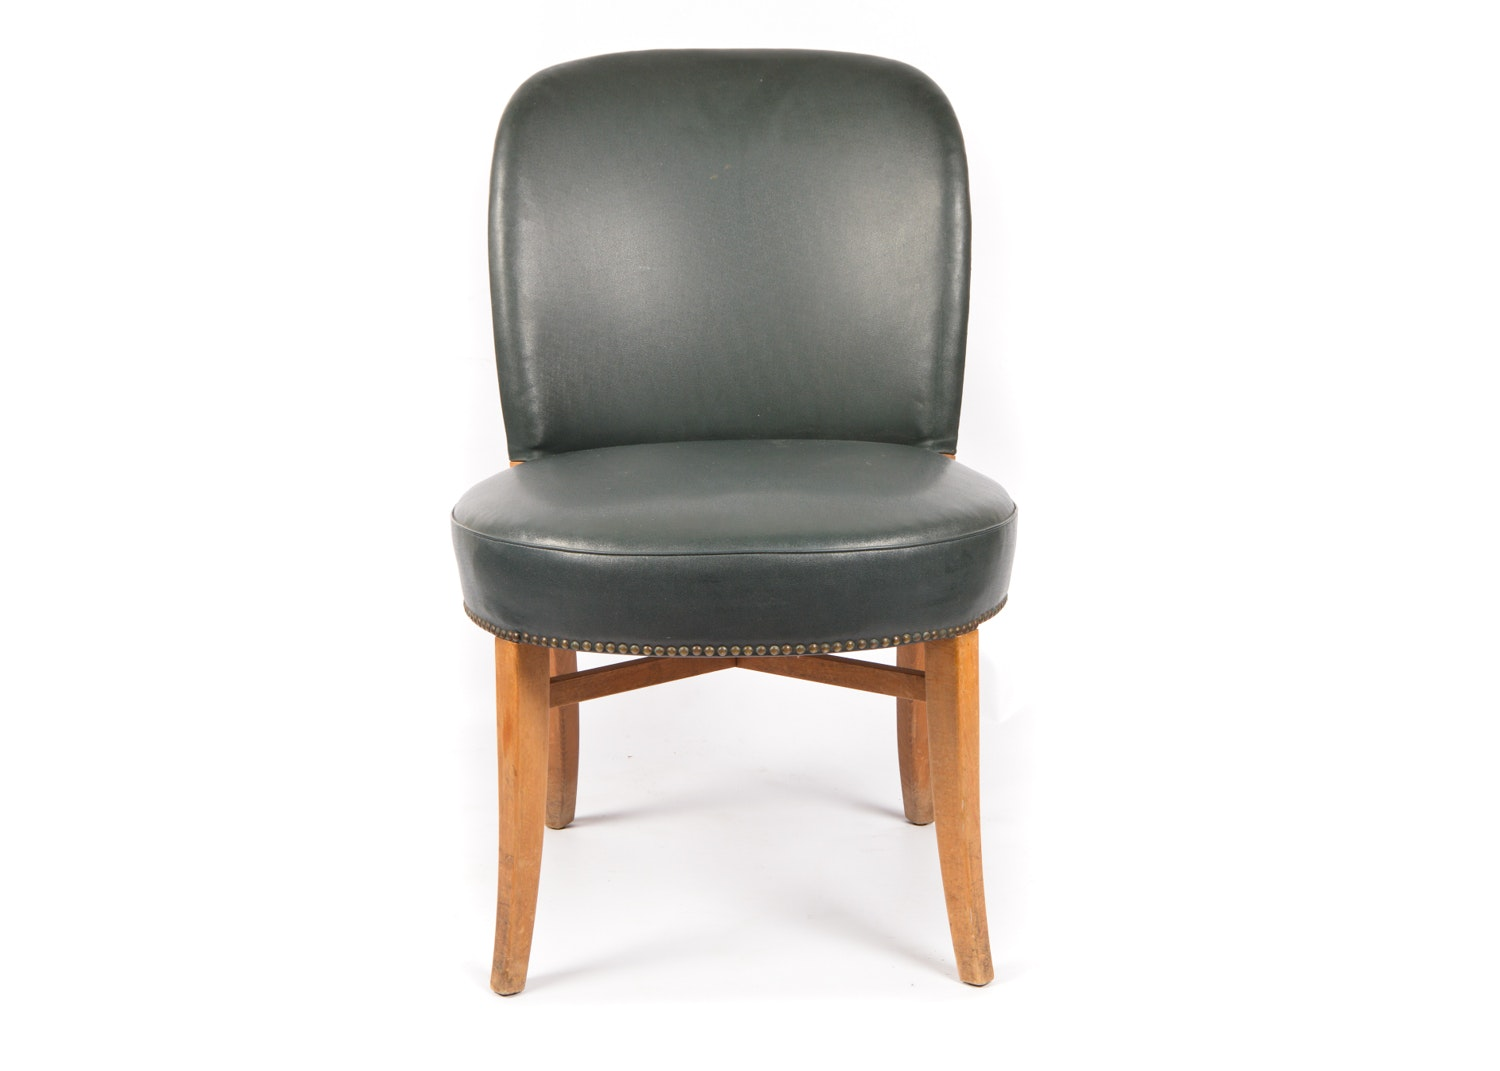 Vinyl Upholstered Curved Back Side Chair, Mid-20th Century